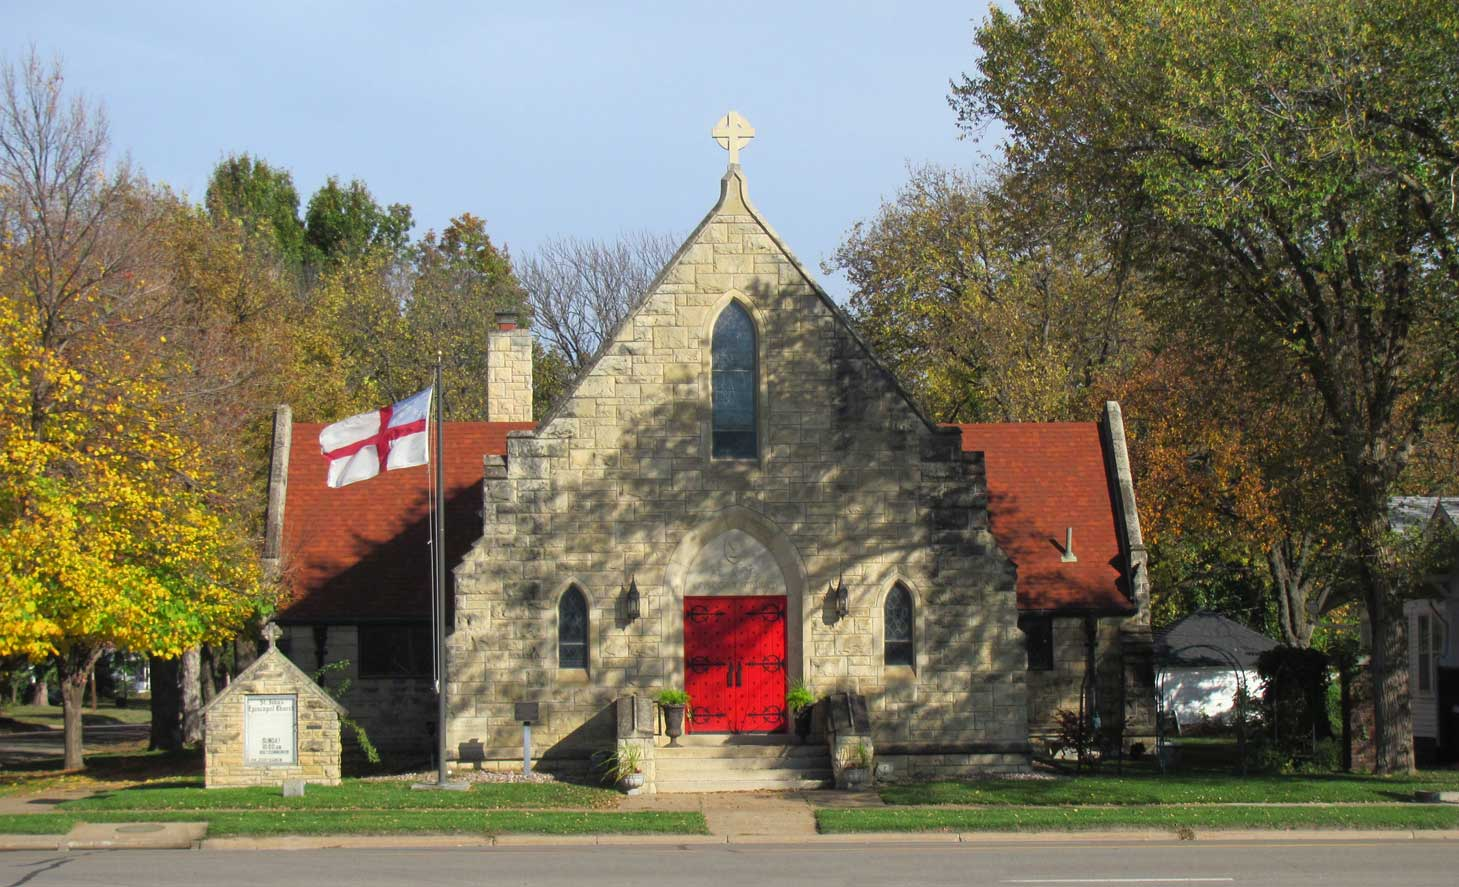 St. John's Episcopal Church has welcomed worshippers at this location since 1883.